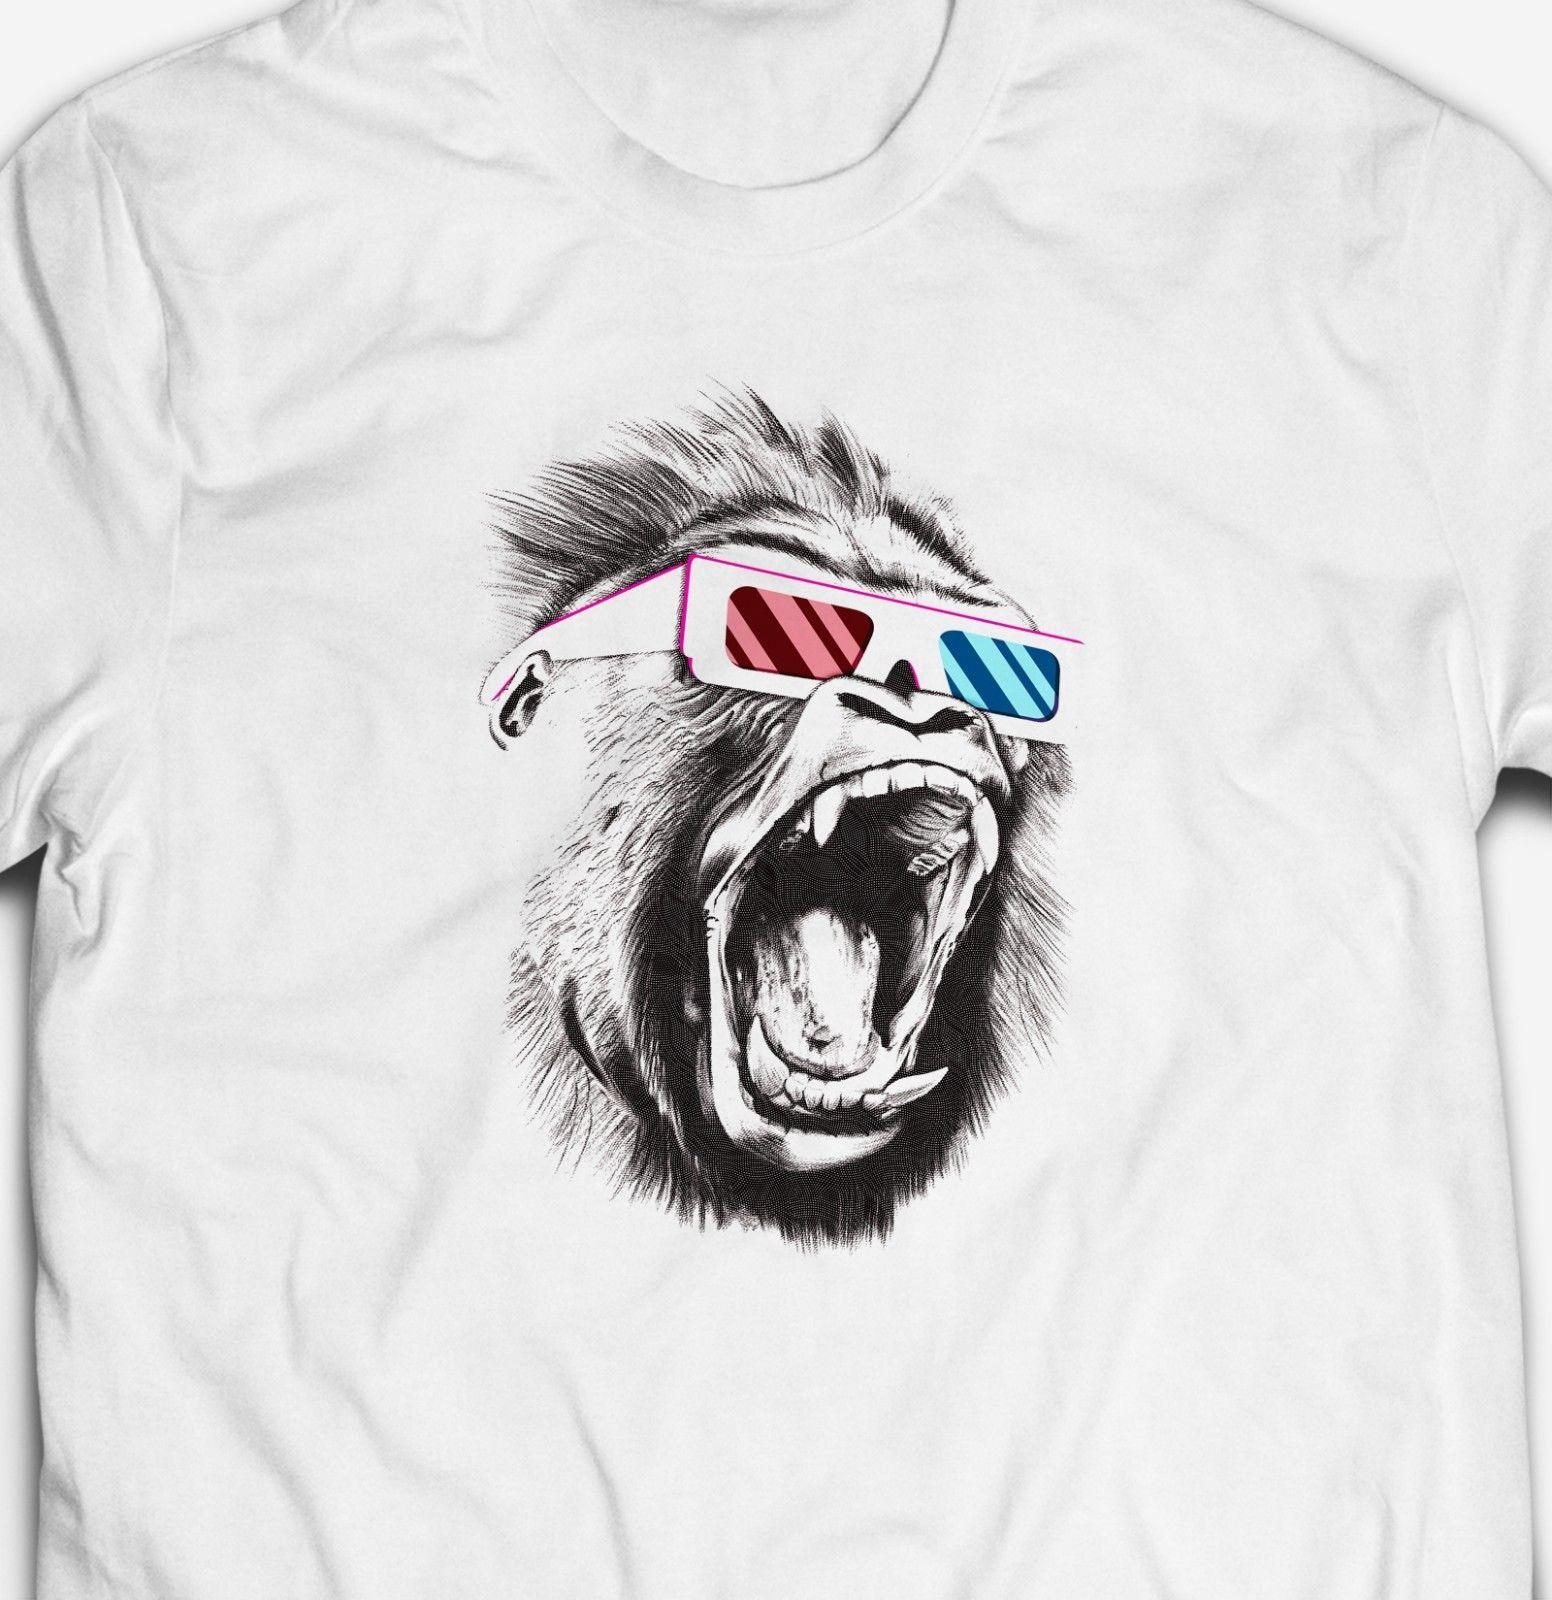 629afc0c8aa FUNNY 3D GORILLA GLASSES APE MONKEY ANIMAL NATURE 100% Cotton T.V. T Shirt  Tee Suit Hat Pink T Shirt As T Shirt Online T Shirts Buy From Mooncup, ...